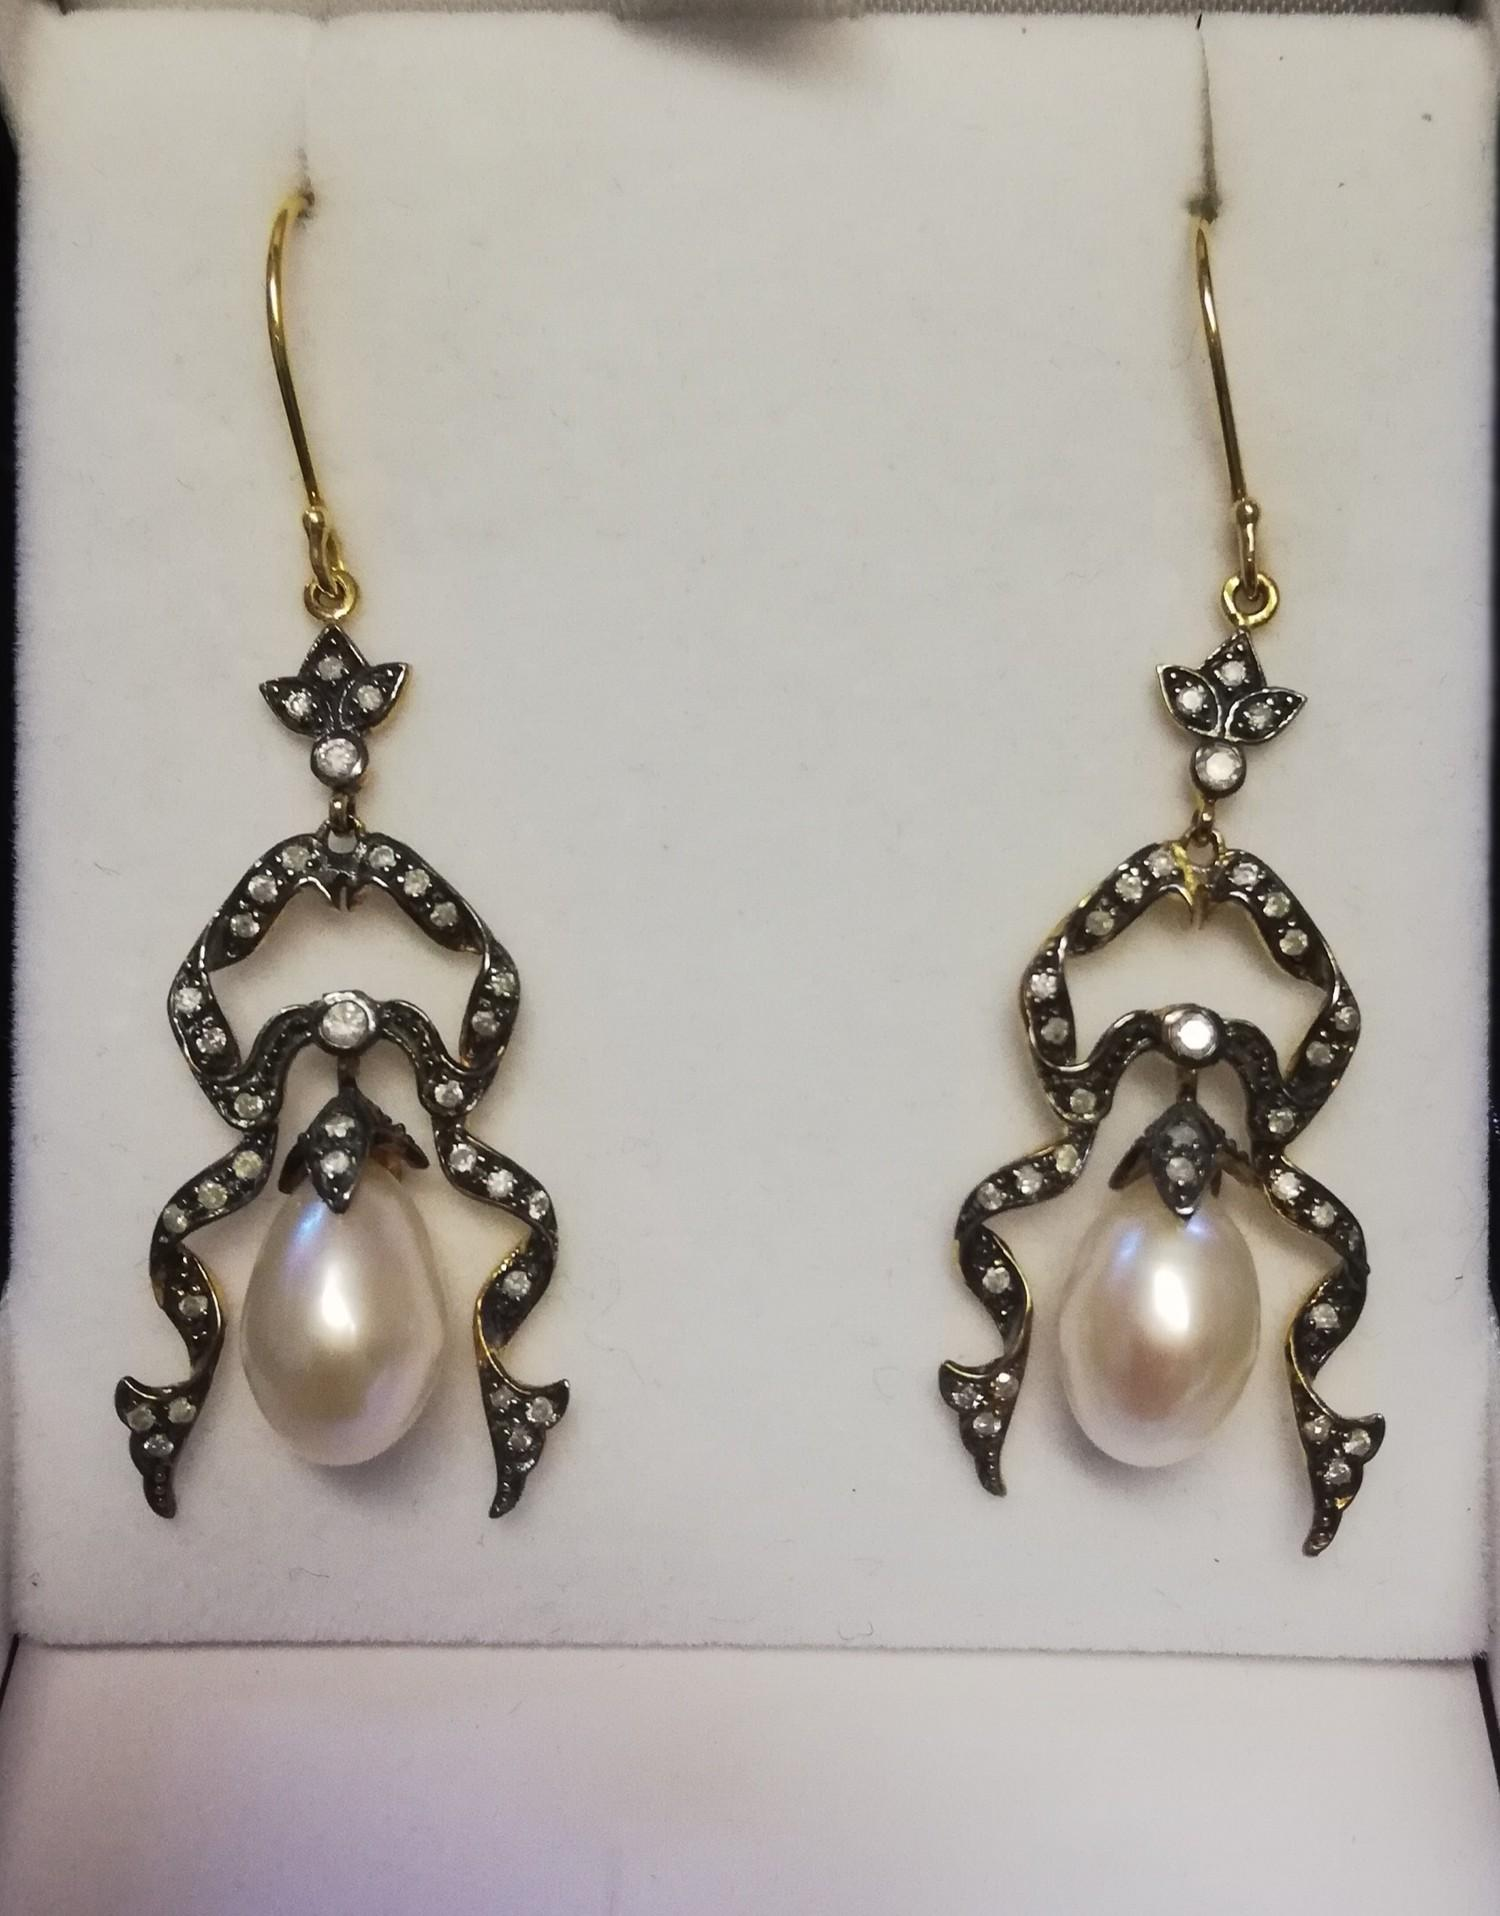 Pair of ornate drop earrings set with diamonds and a suspended pearl